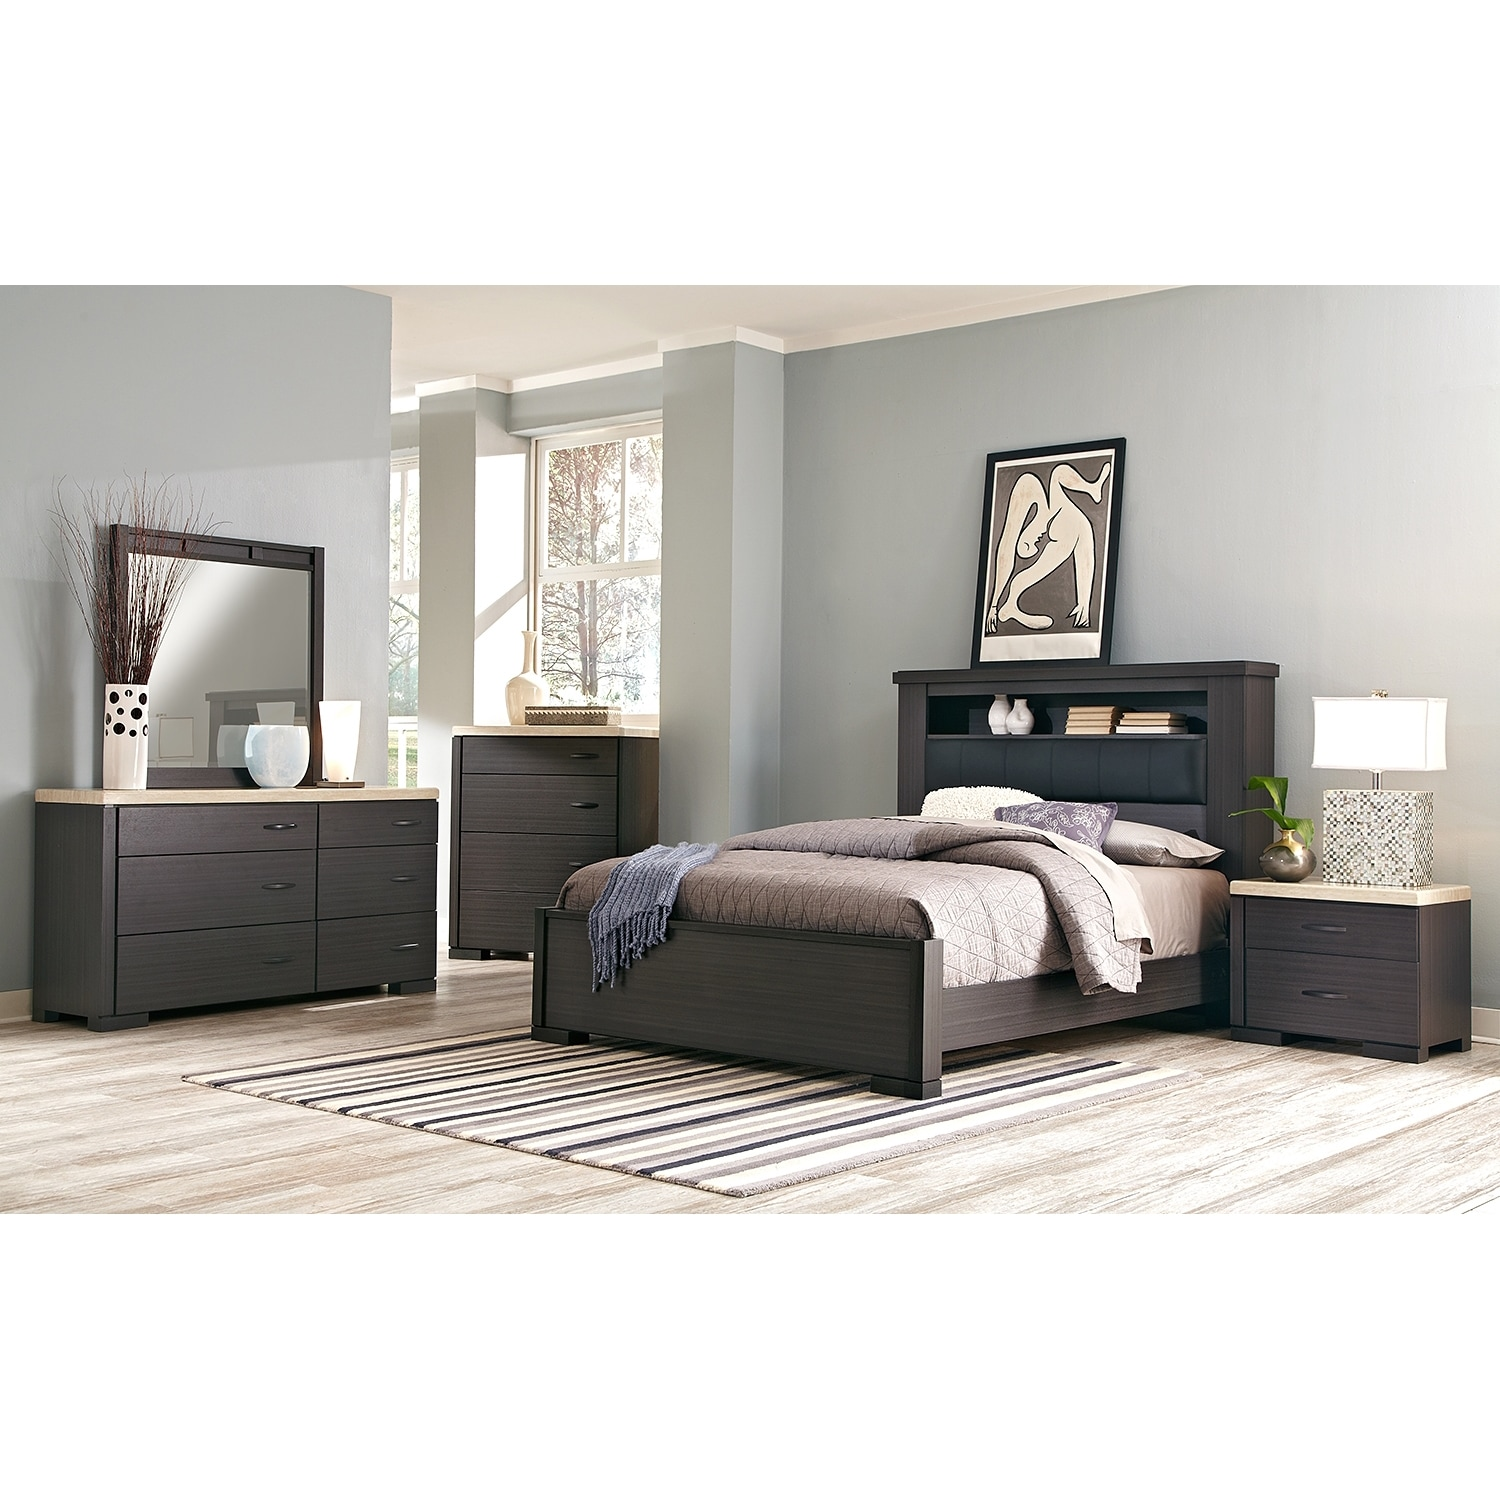 Camino 7 piece queen bedroom set charcoal and ivory for American furniture bedroom furniture